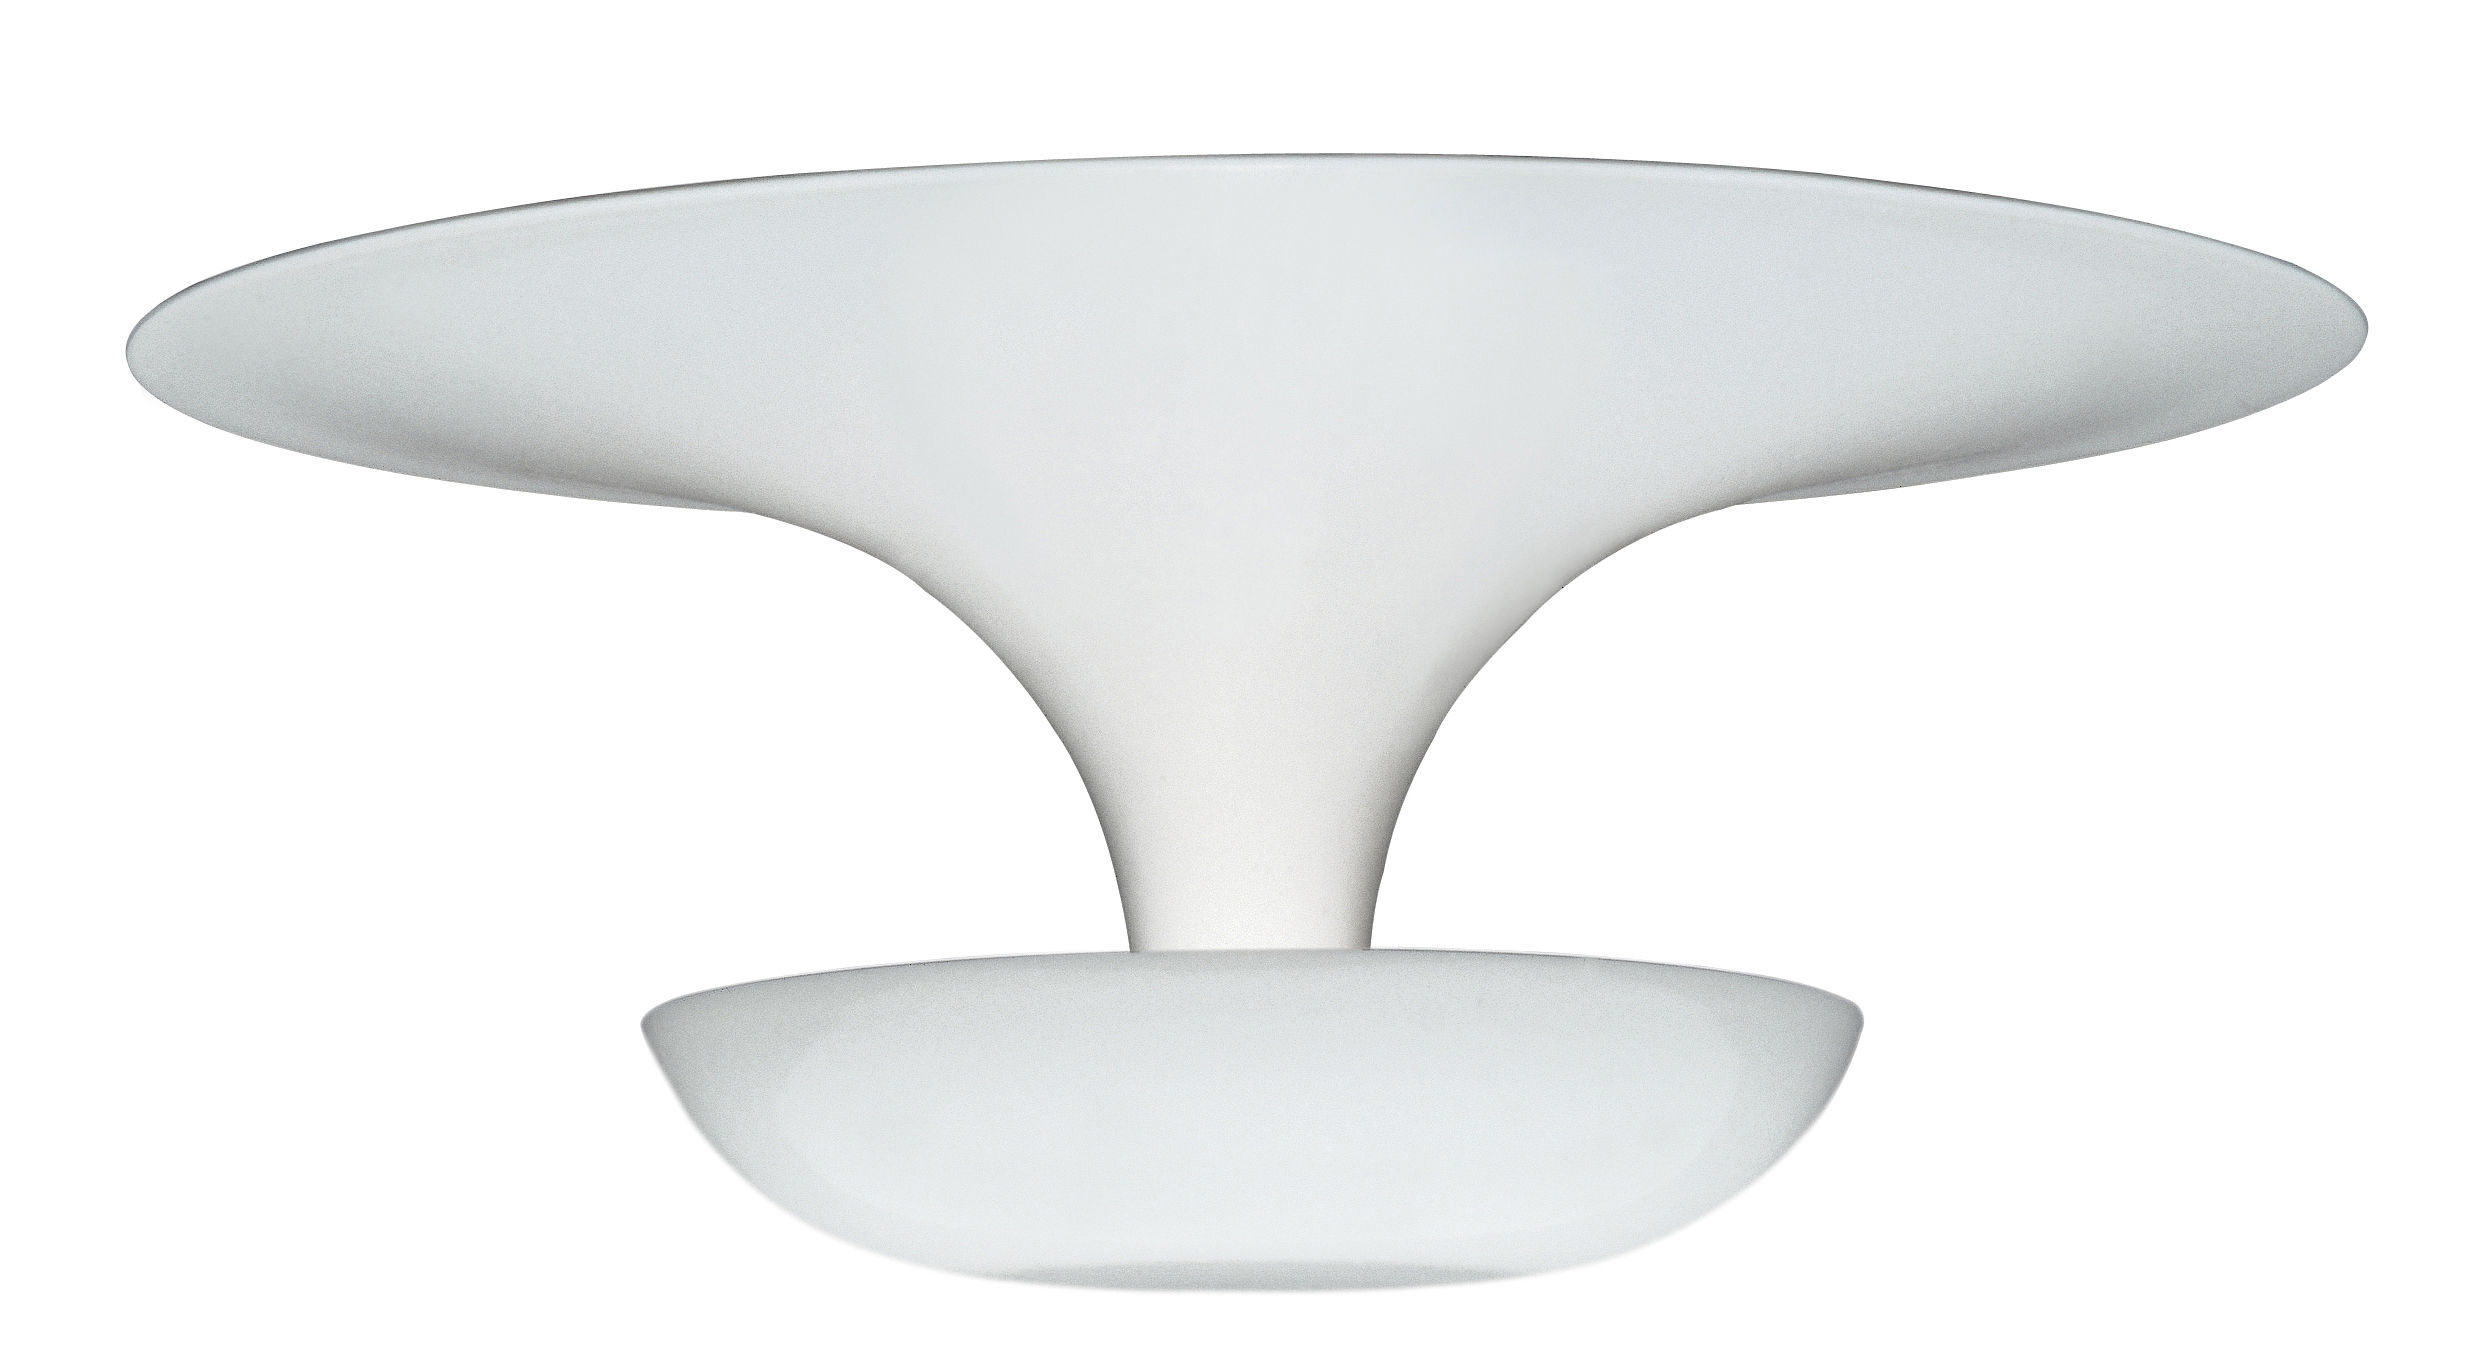 Lighting - Ceiling Lights - Funnel Mini Ceiling light by Vibia - White - Painted aluminium